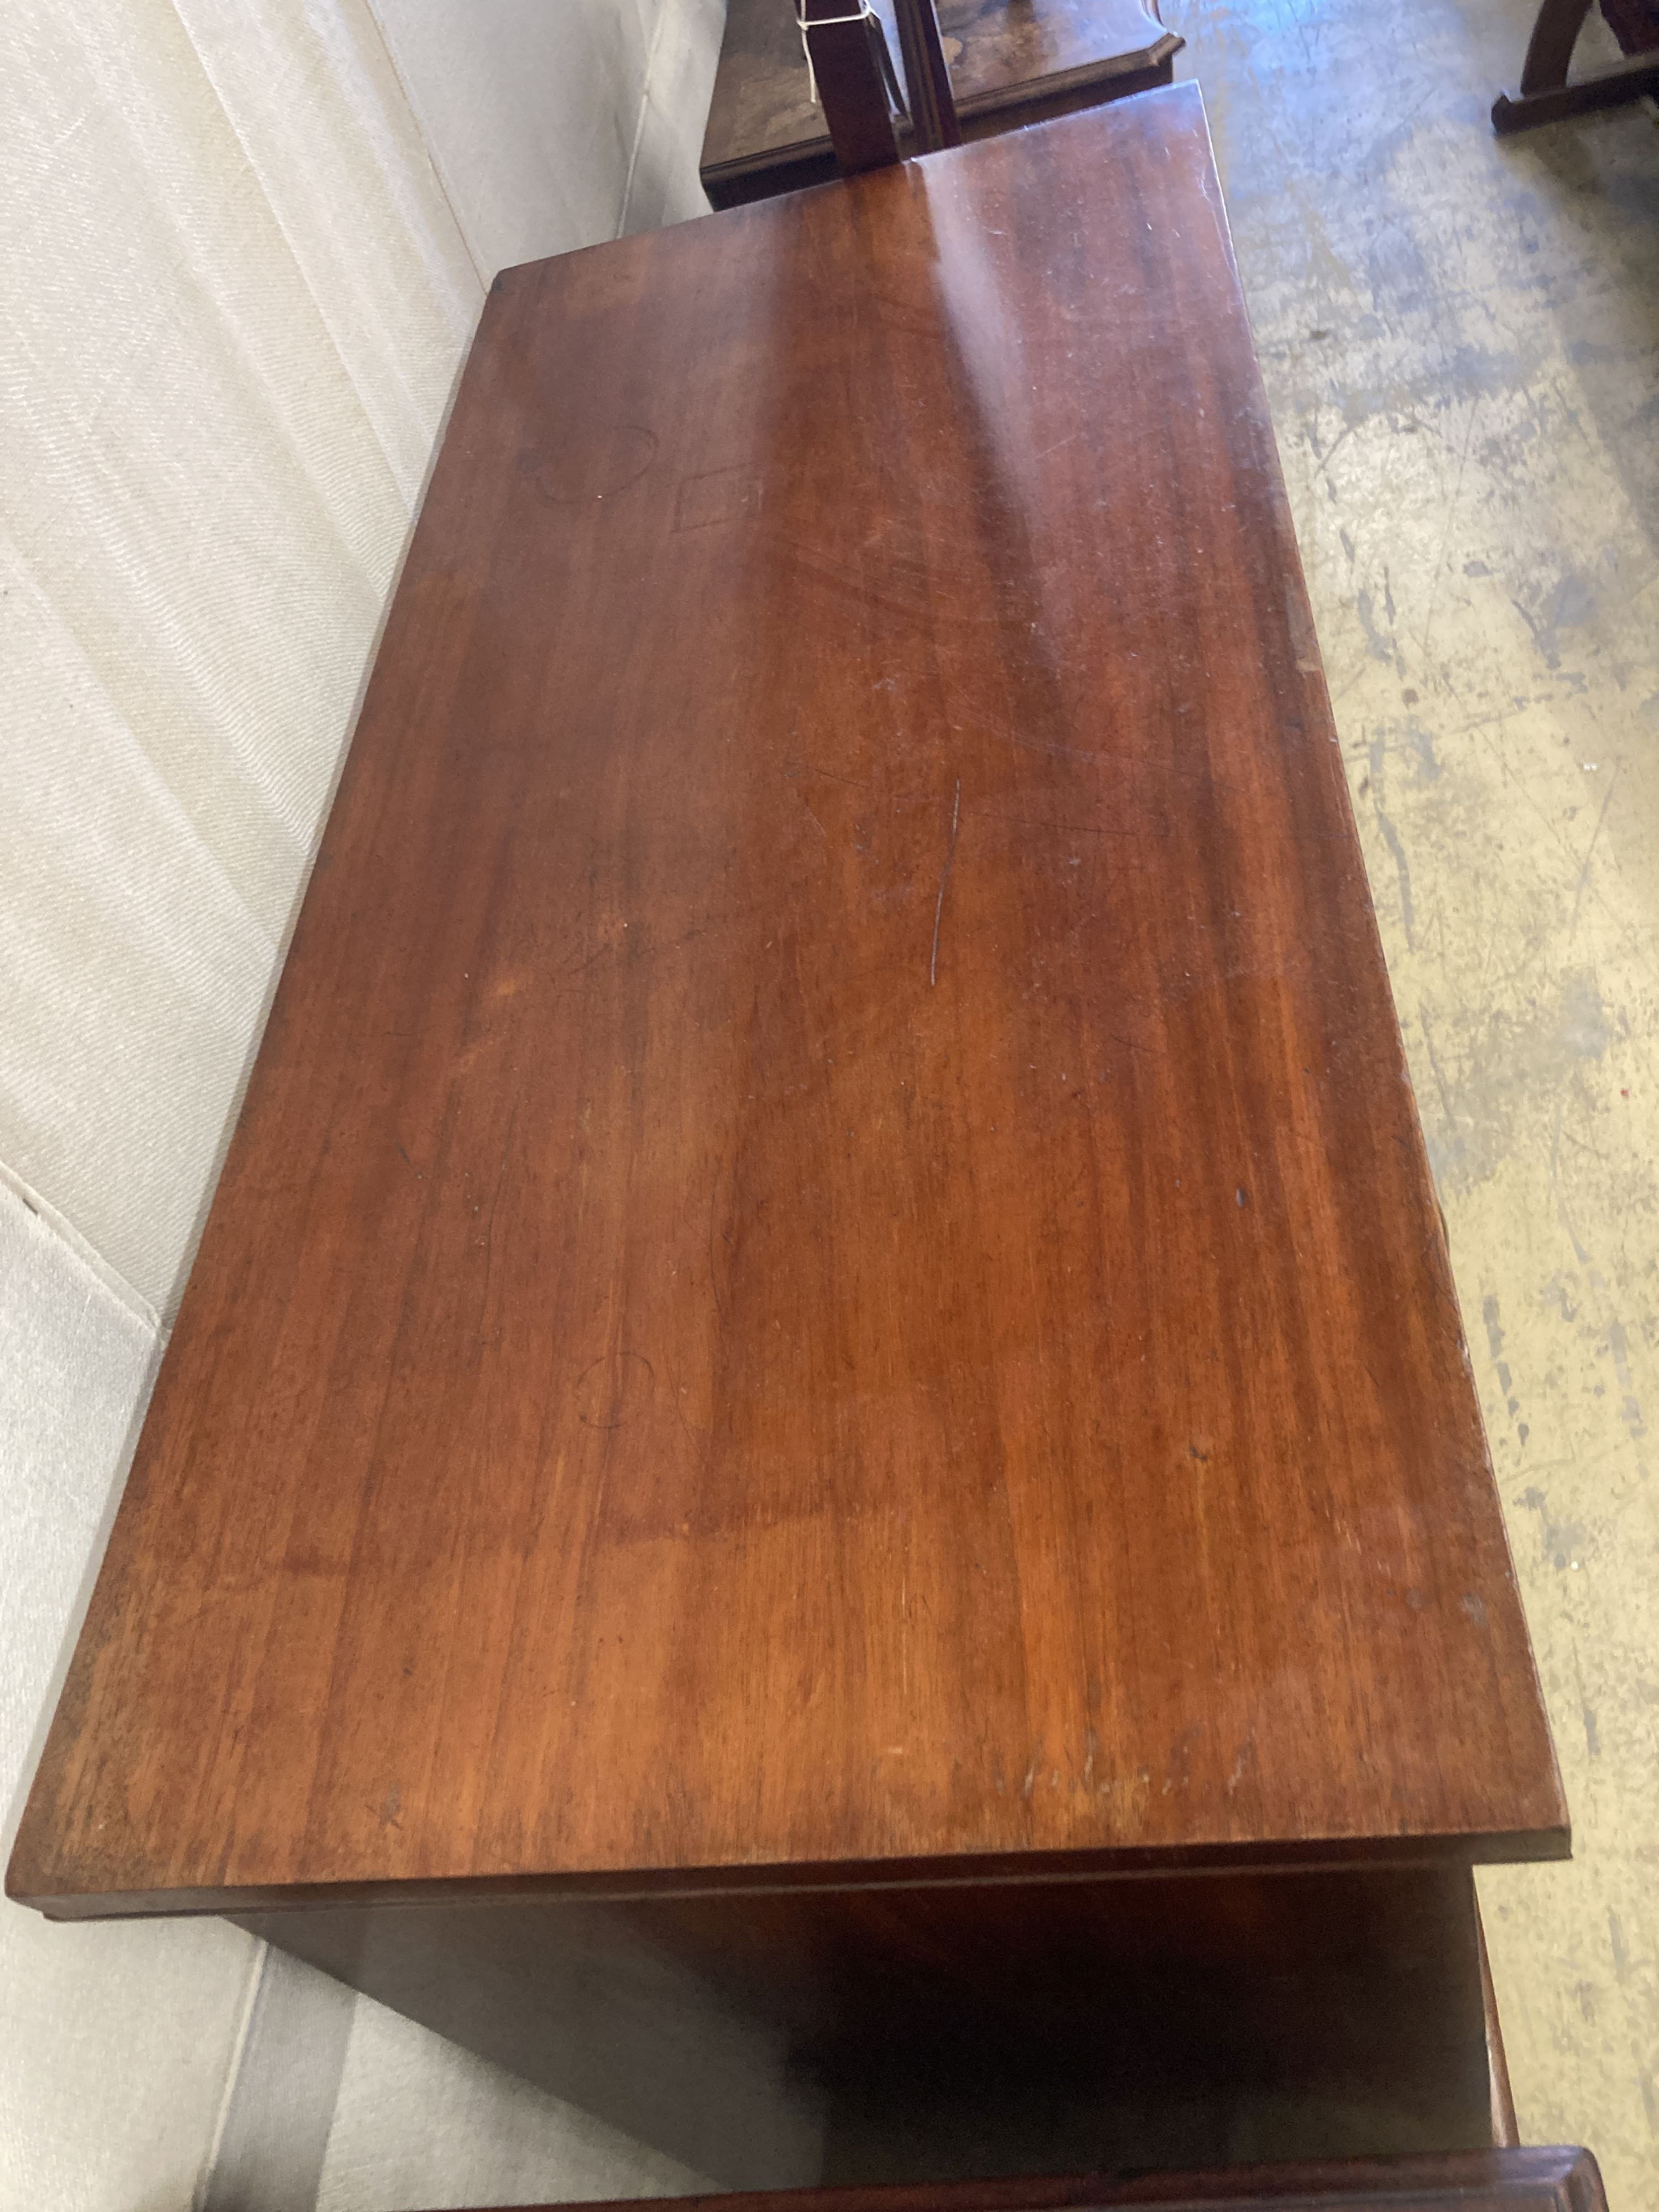 A Victorian mahogany chest of drawers, width 109cm, depth 50cm, height 112cm - Image 2 of 5